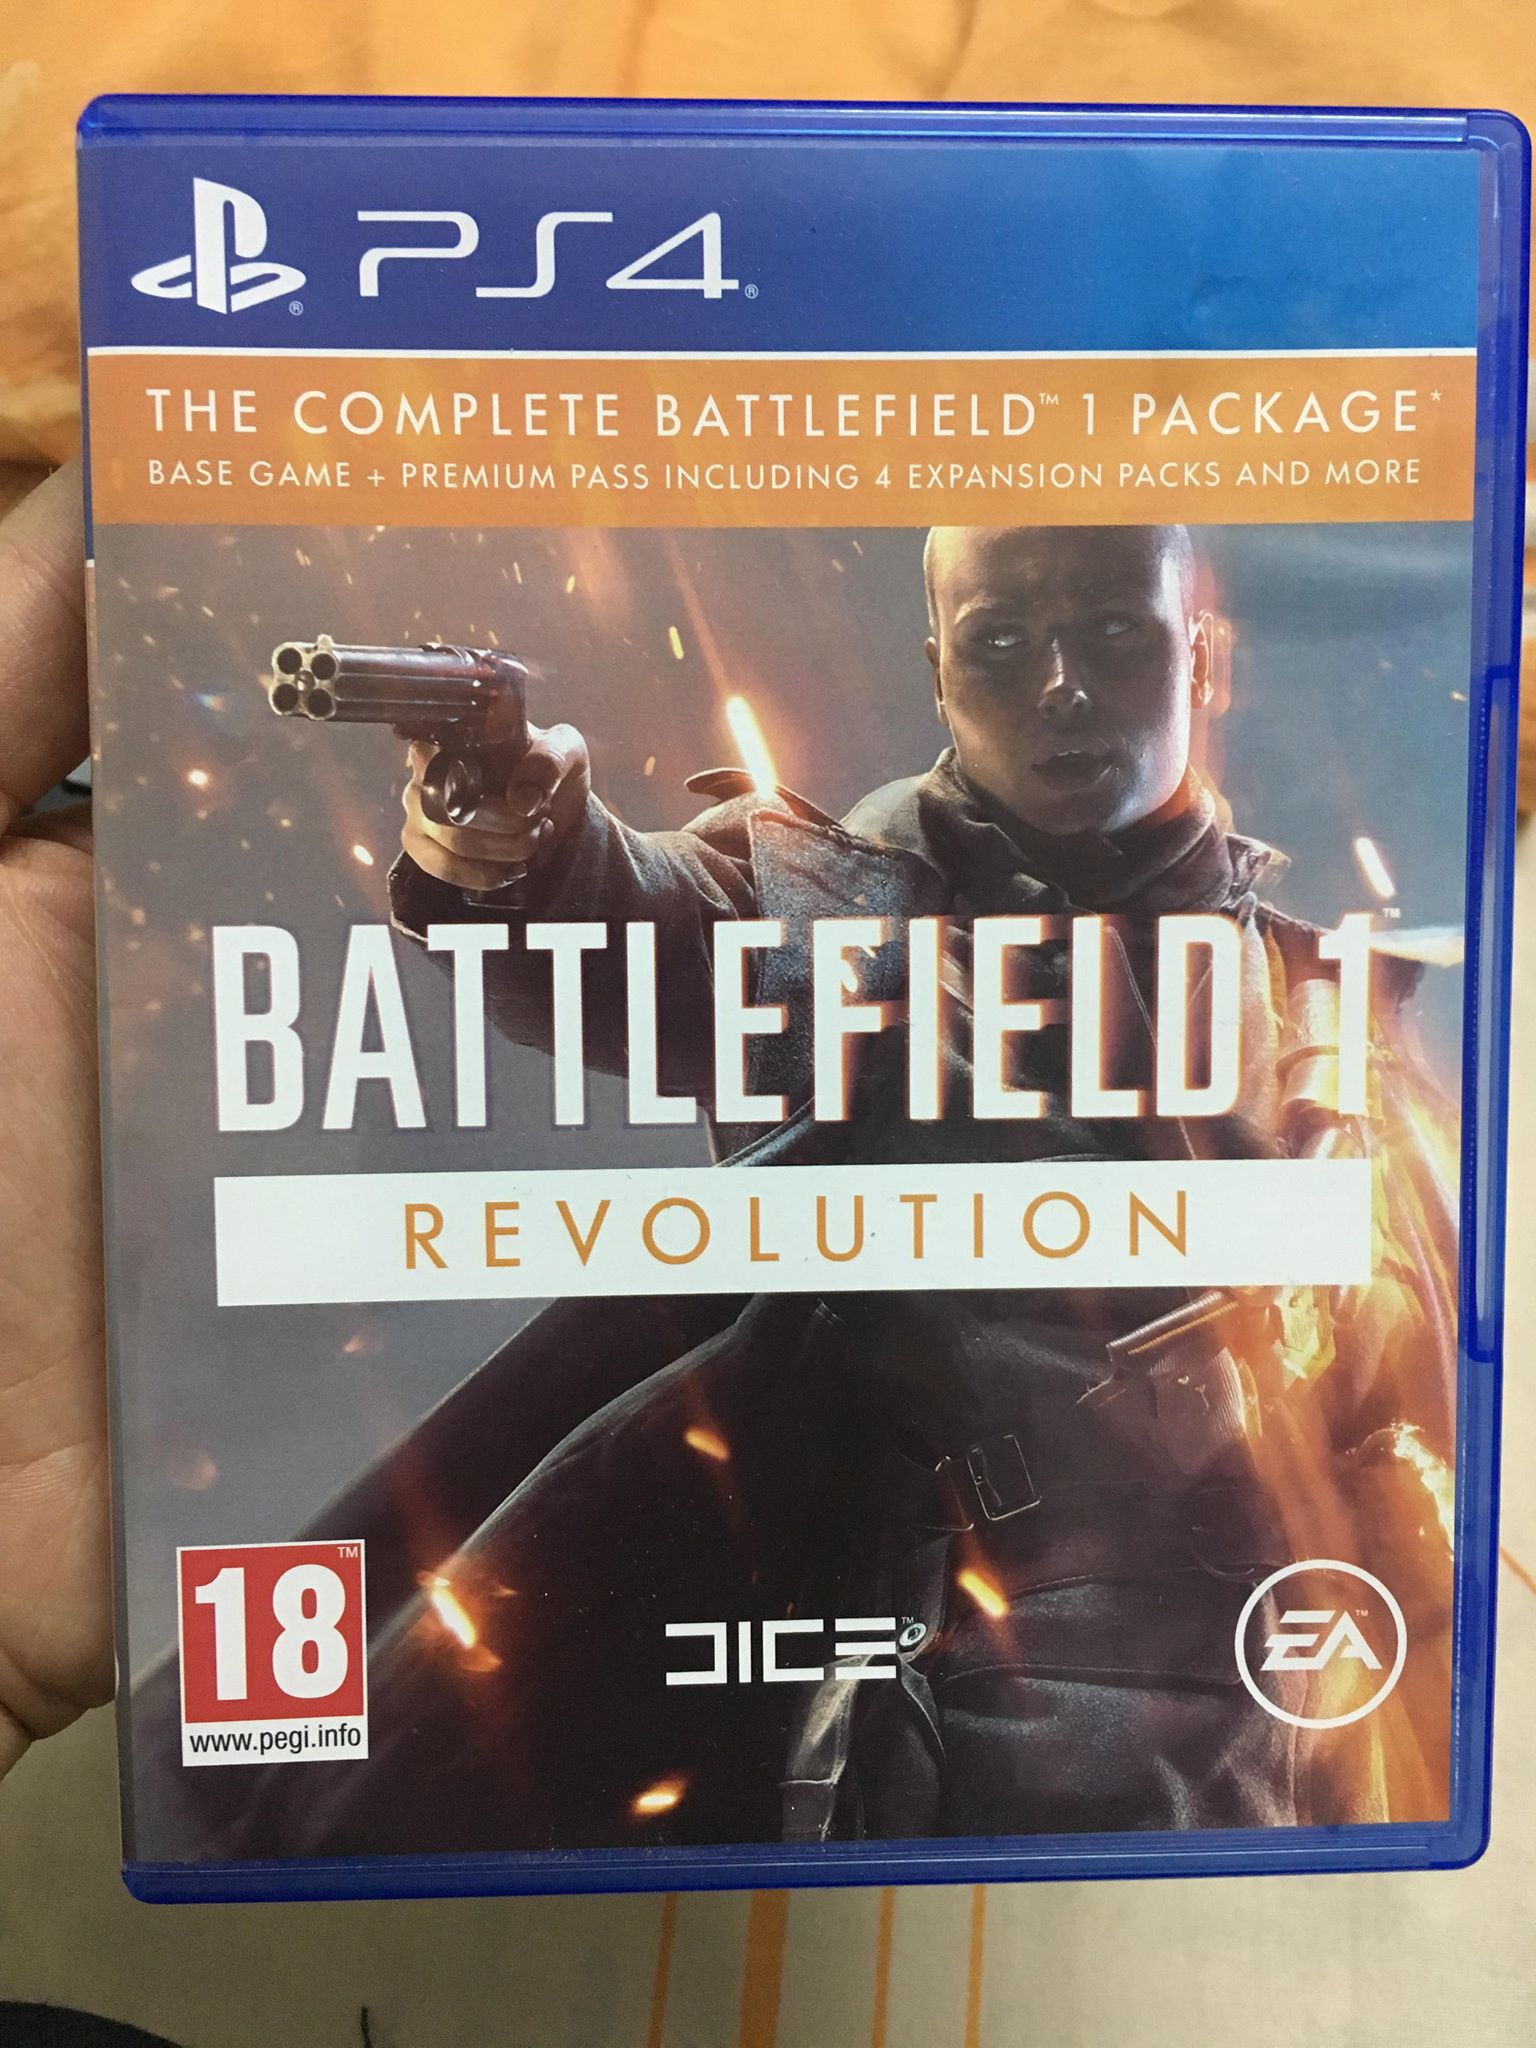 Solved Battlefield 1 Revolution Ps4 Answer Hq Game 38085493 494800970956730 4423656030995480576 N